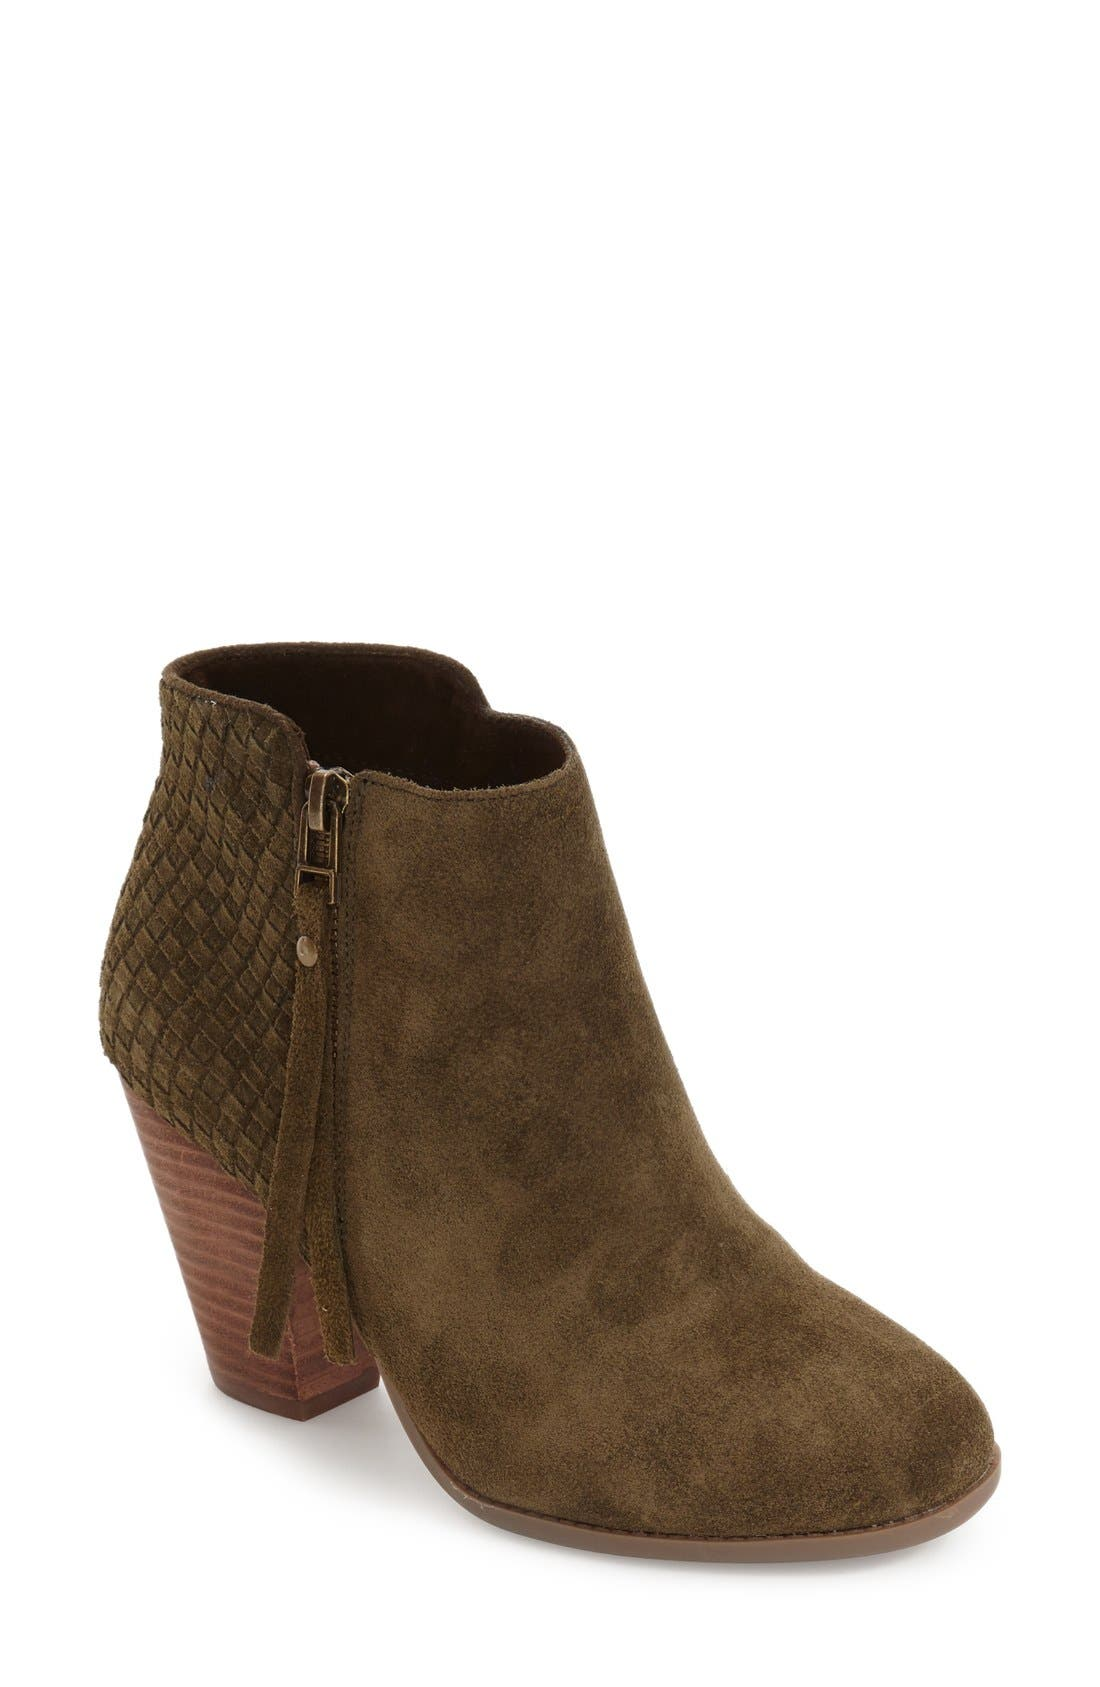 Alternate Image 1 Selected - Sole Society 'Zada' Bootie(Women)